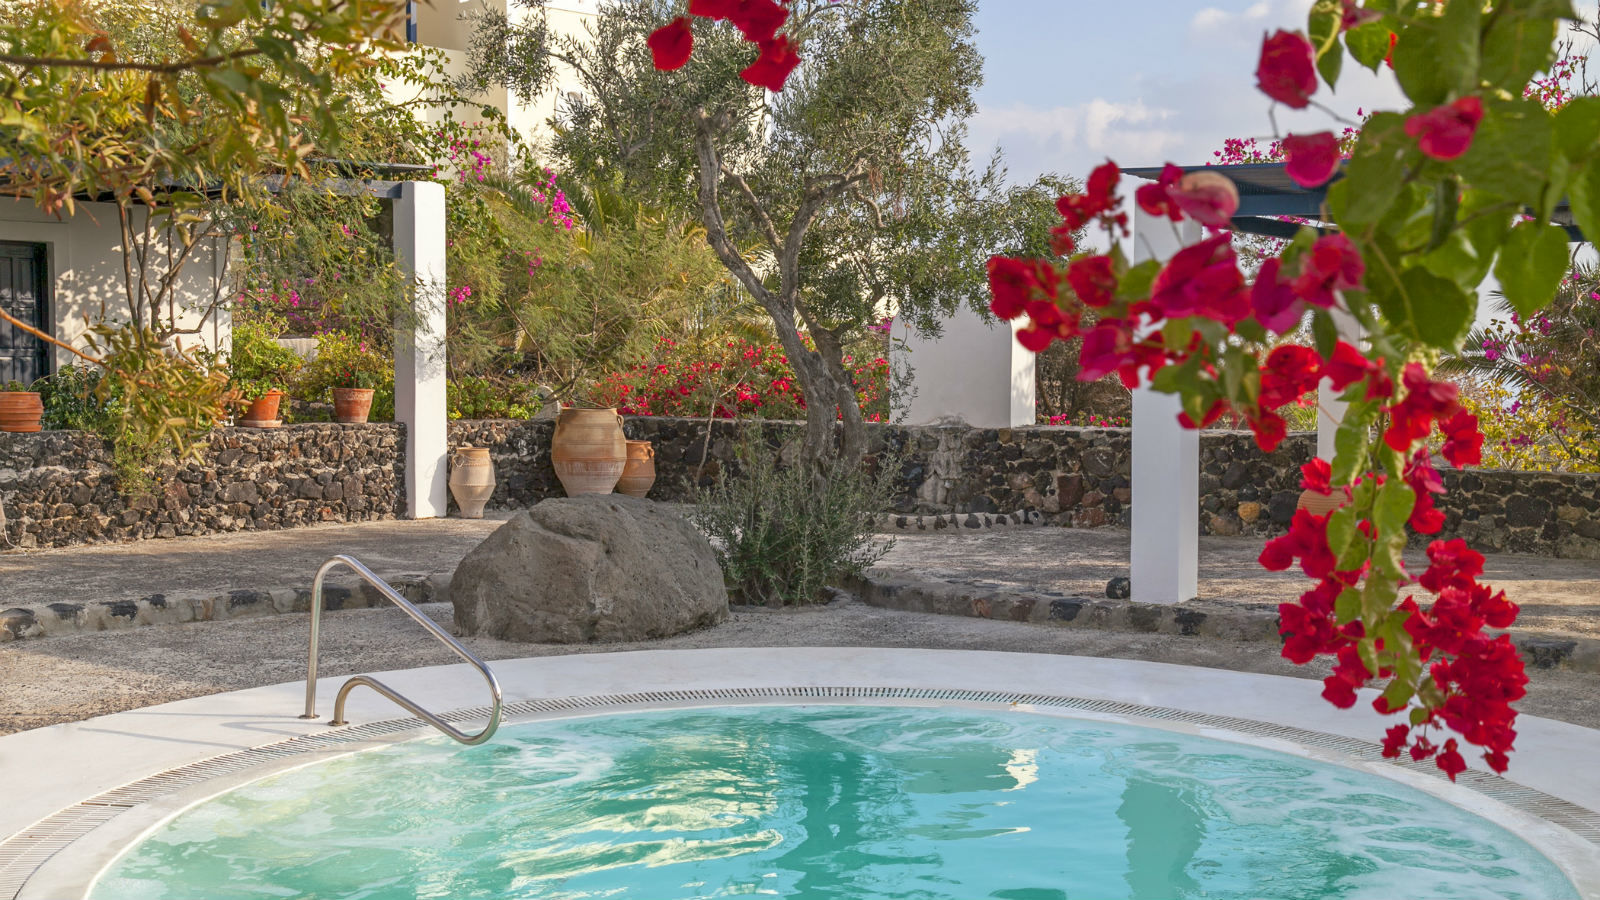 Jacuzzi area under the trees - Juice Bar Santorini Vedema Hotel